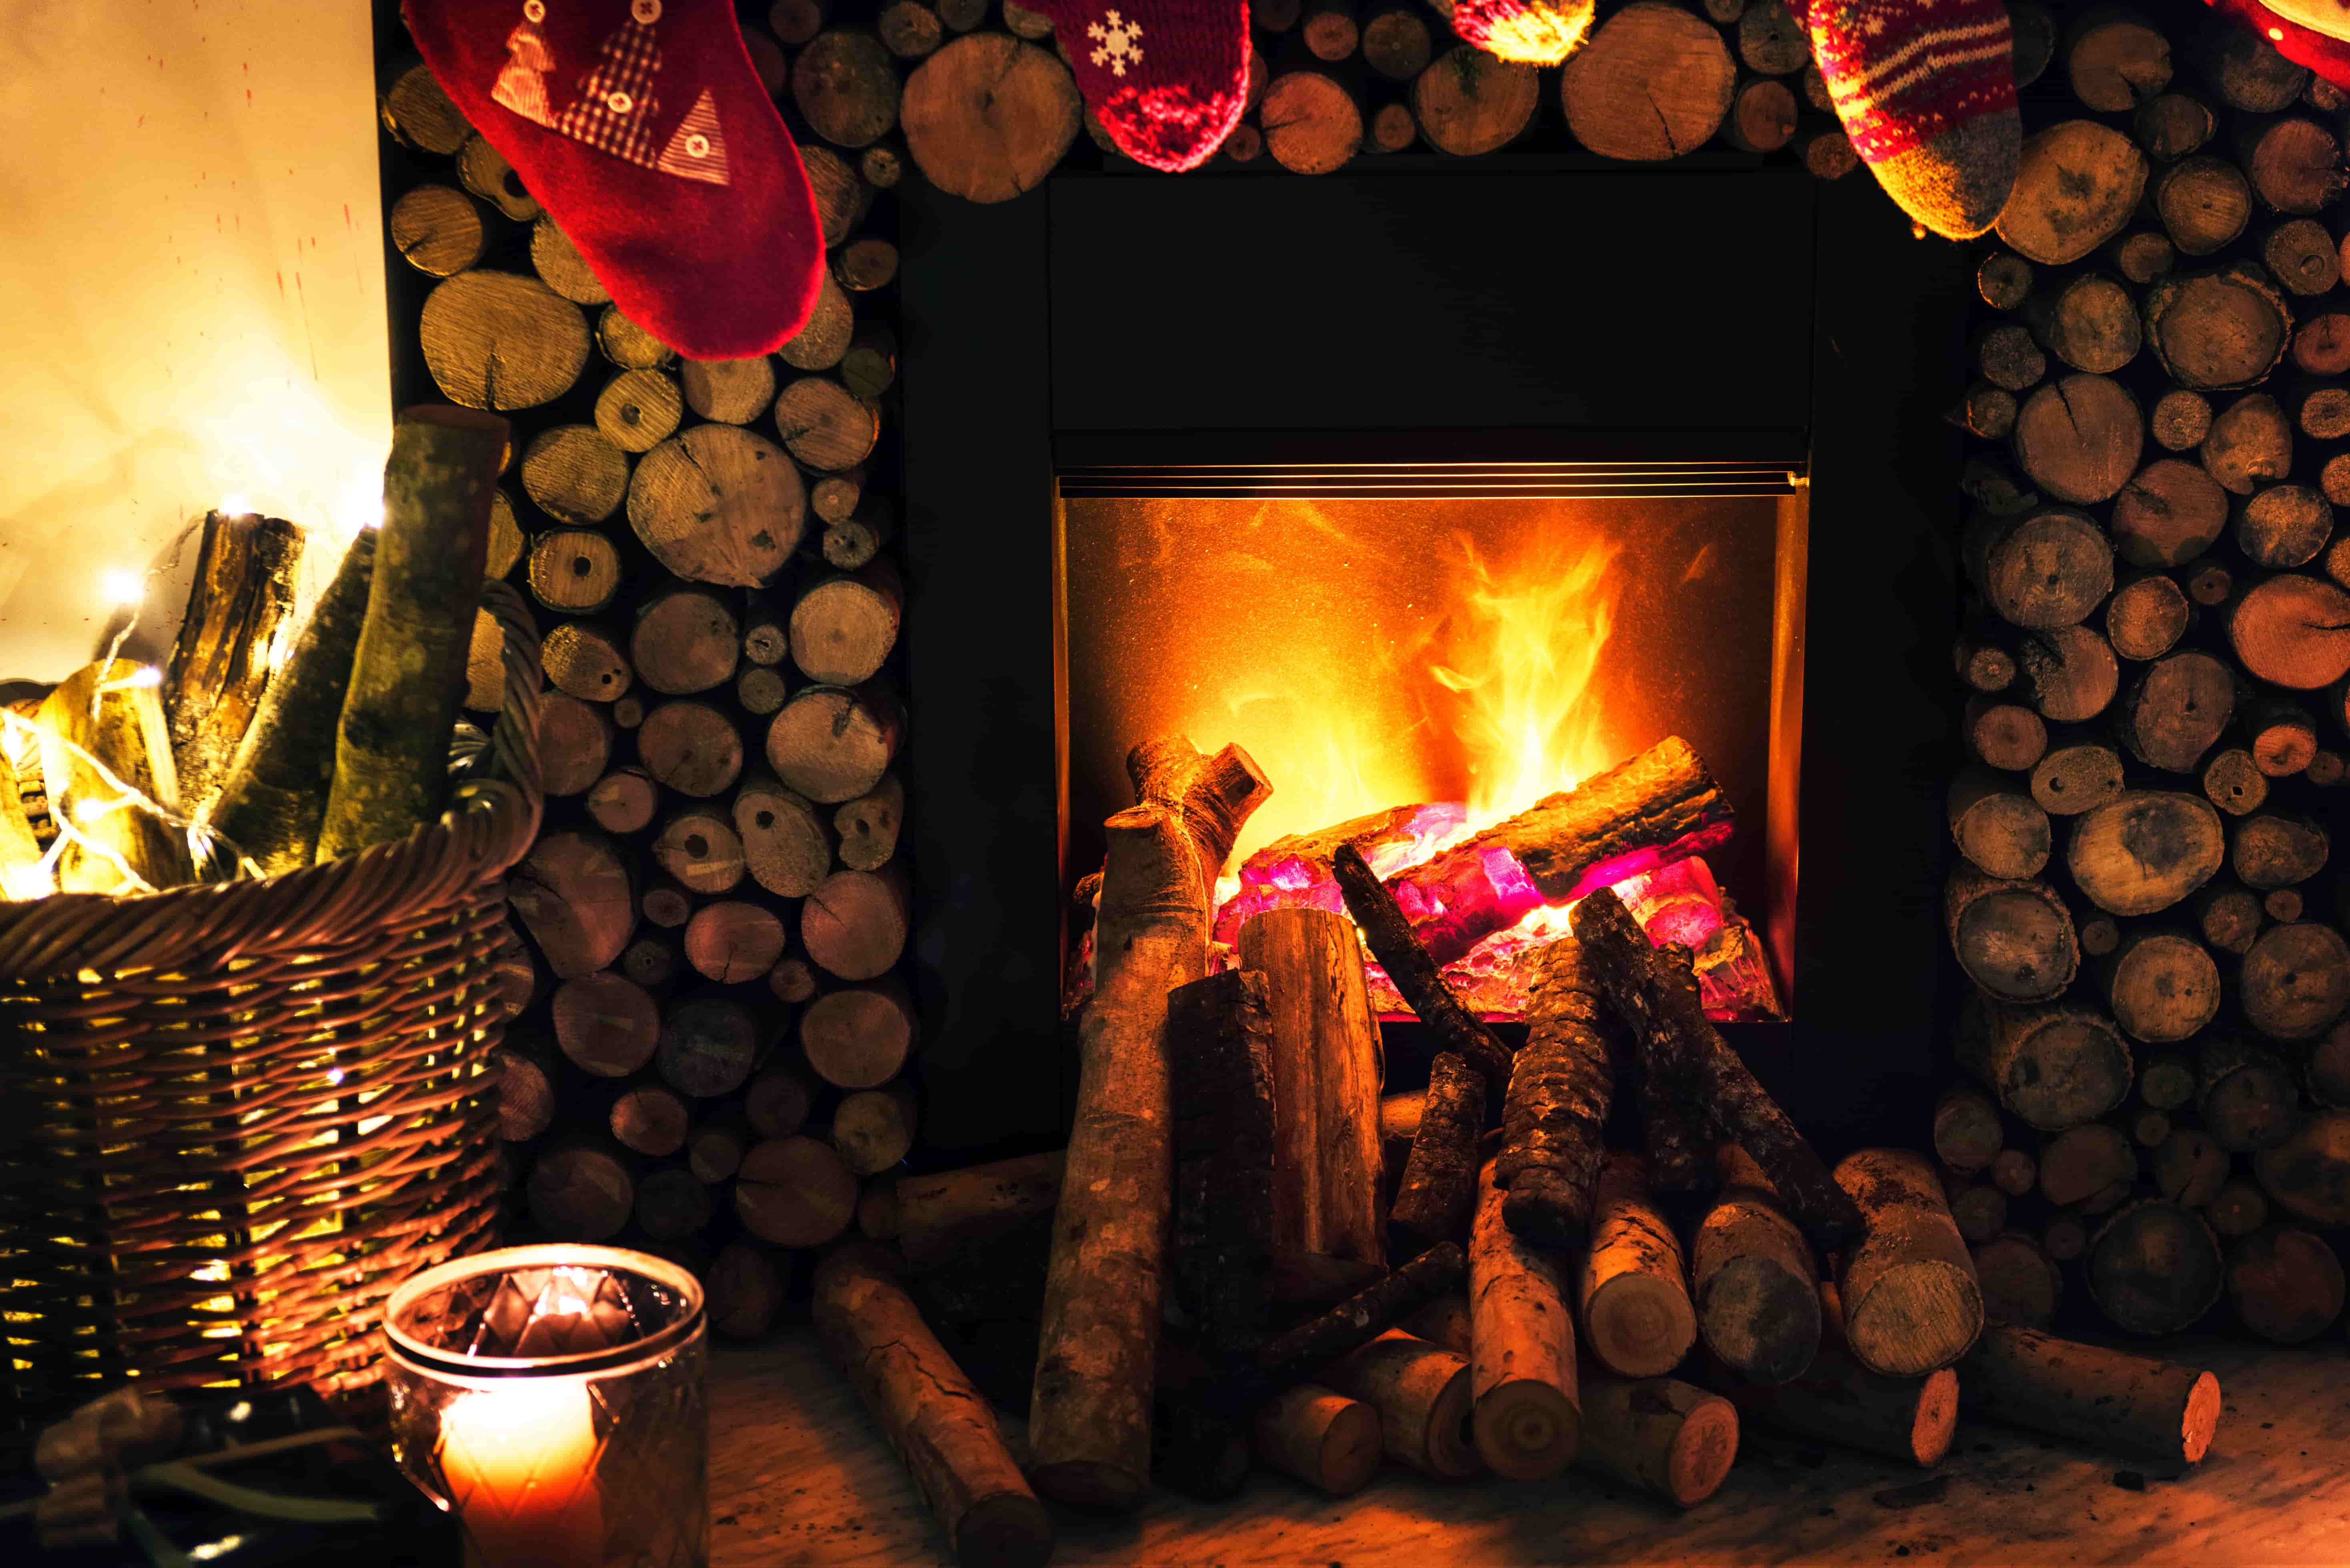 Fireplace at Christmas in a chalet